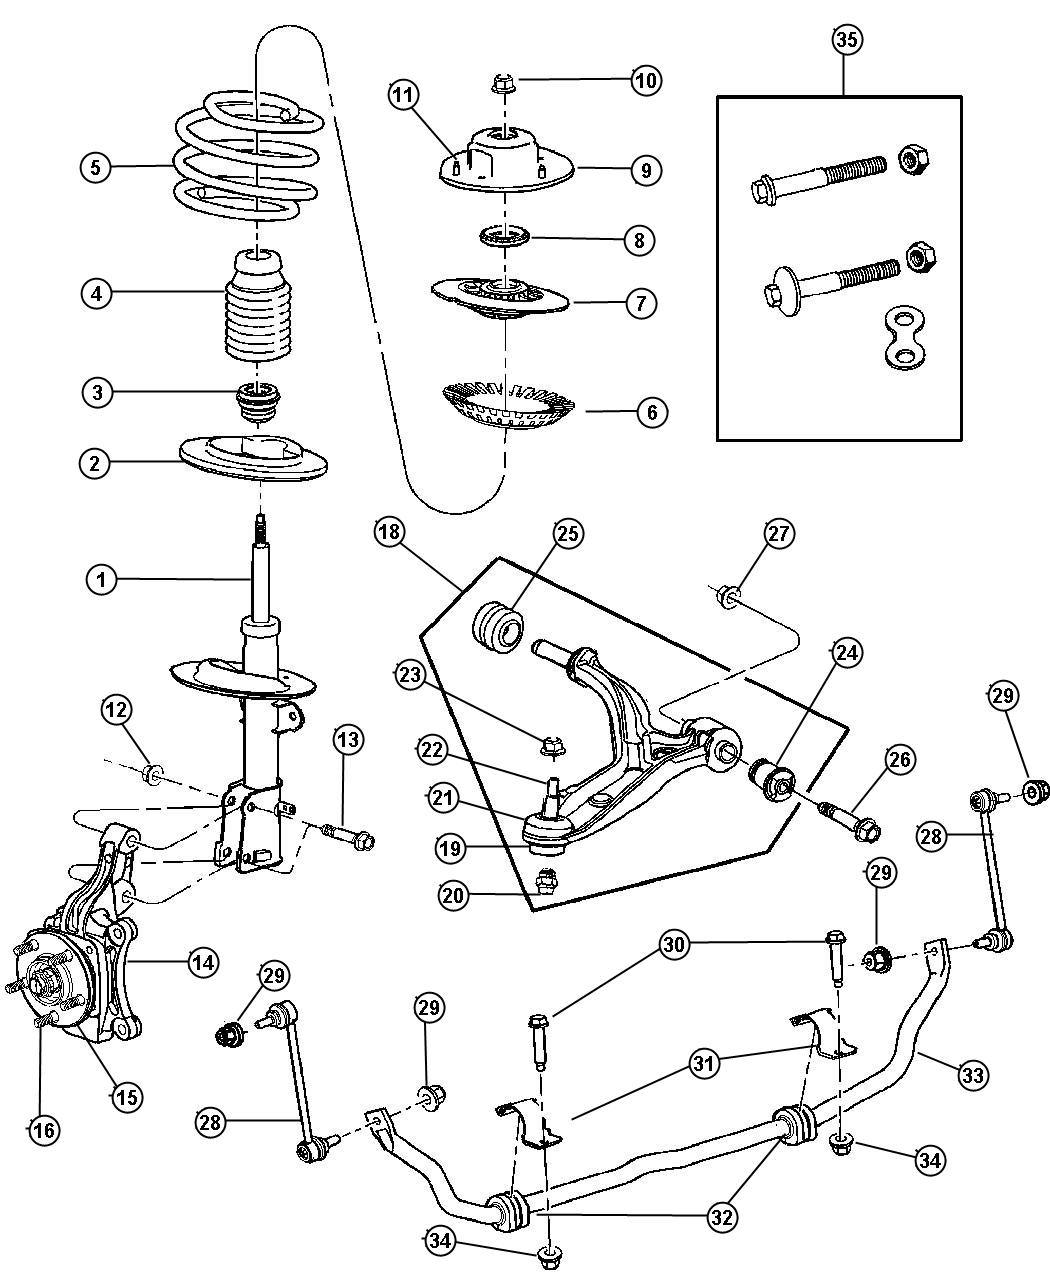 2001 dodge durango suspension diagram